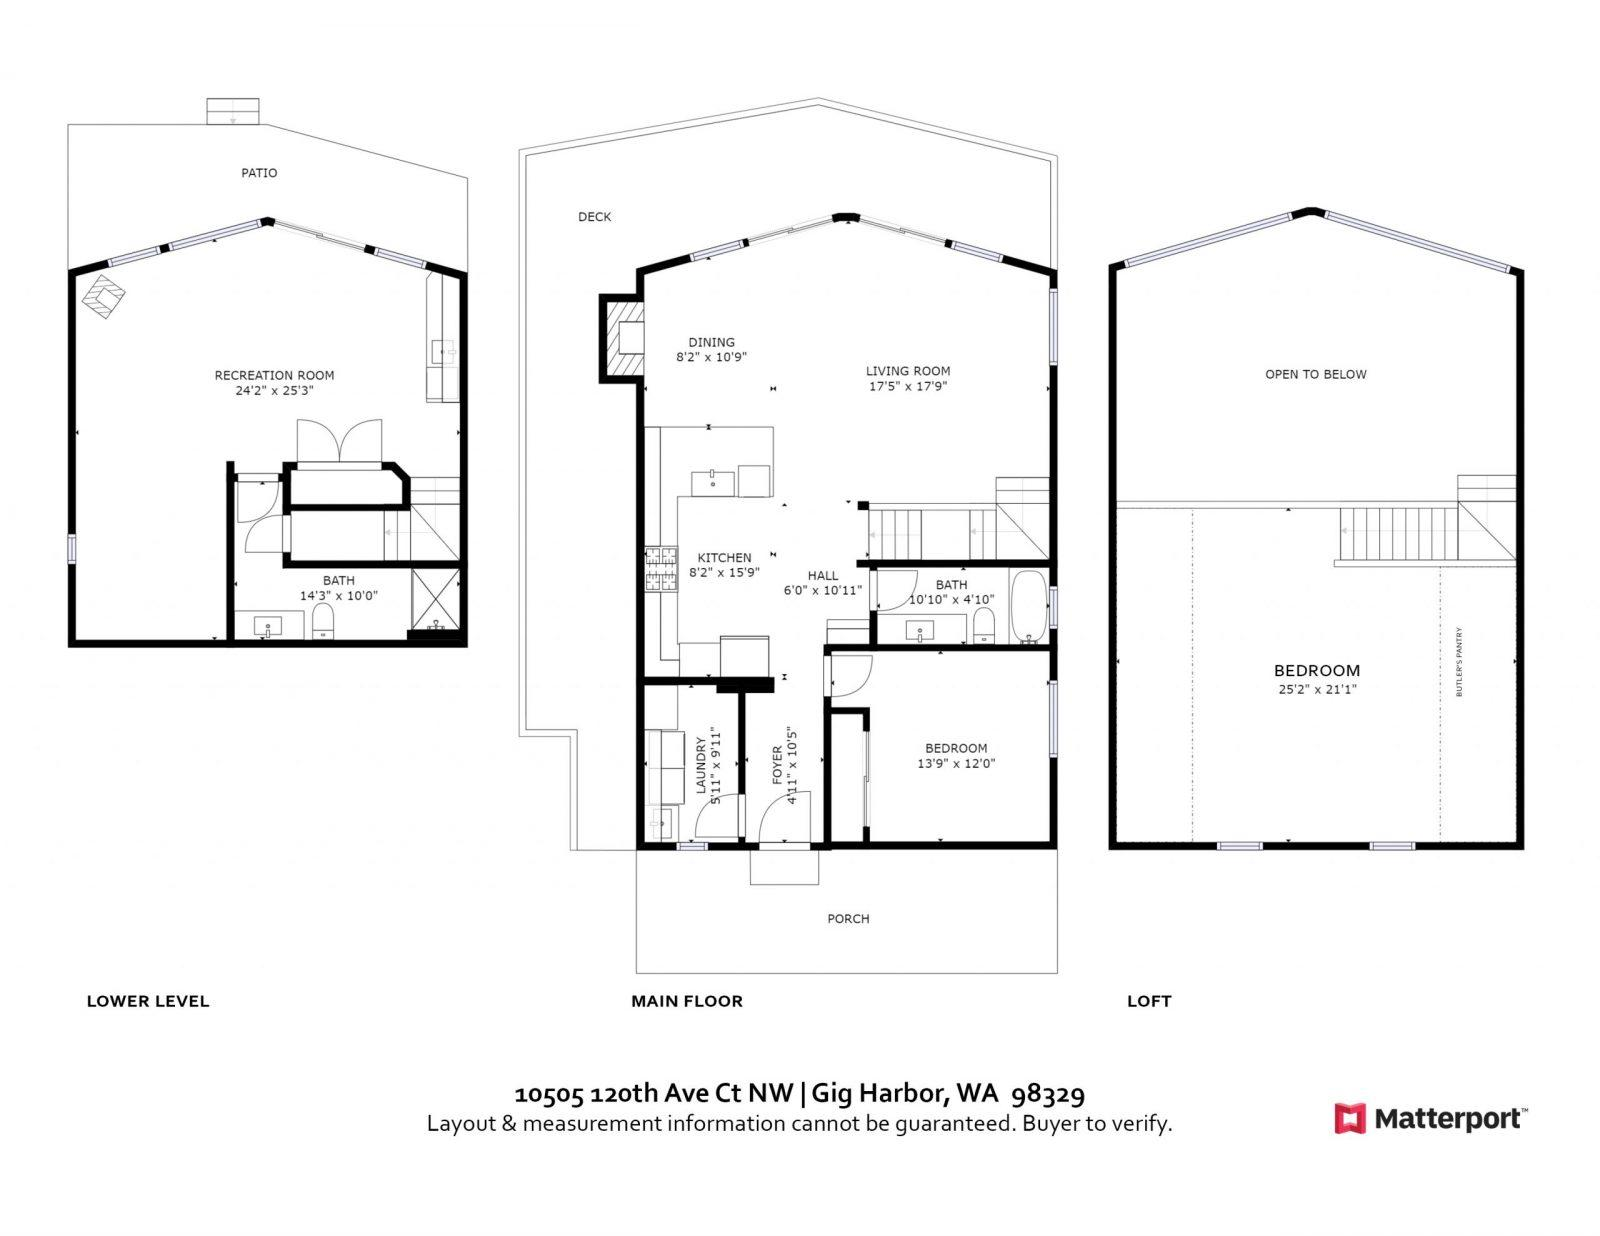 FLOOR PLAN: 10505 120th Ave Ct NW, Gig Harbor WA 98329